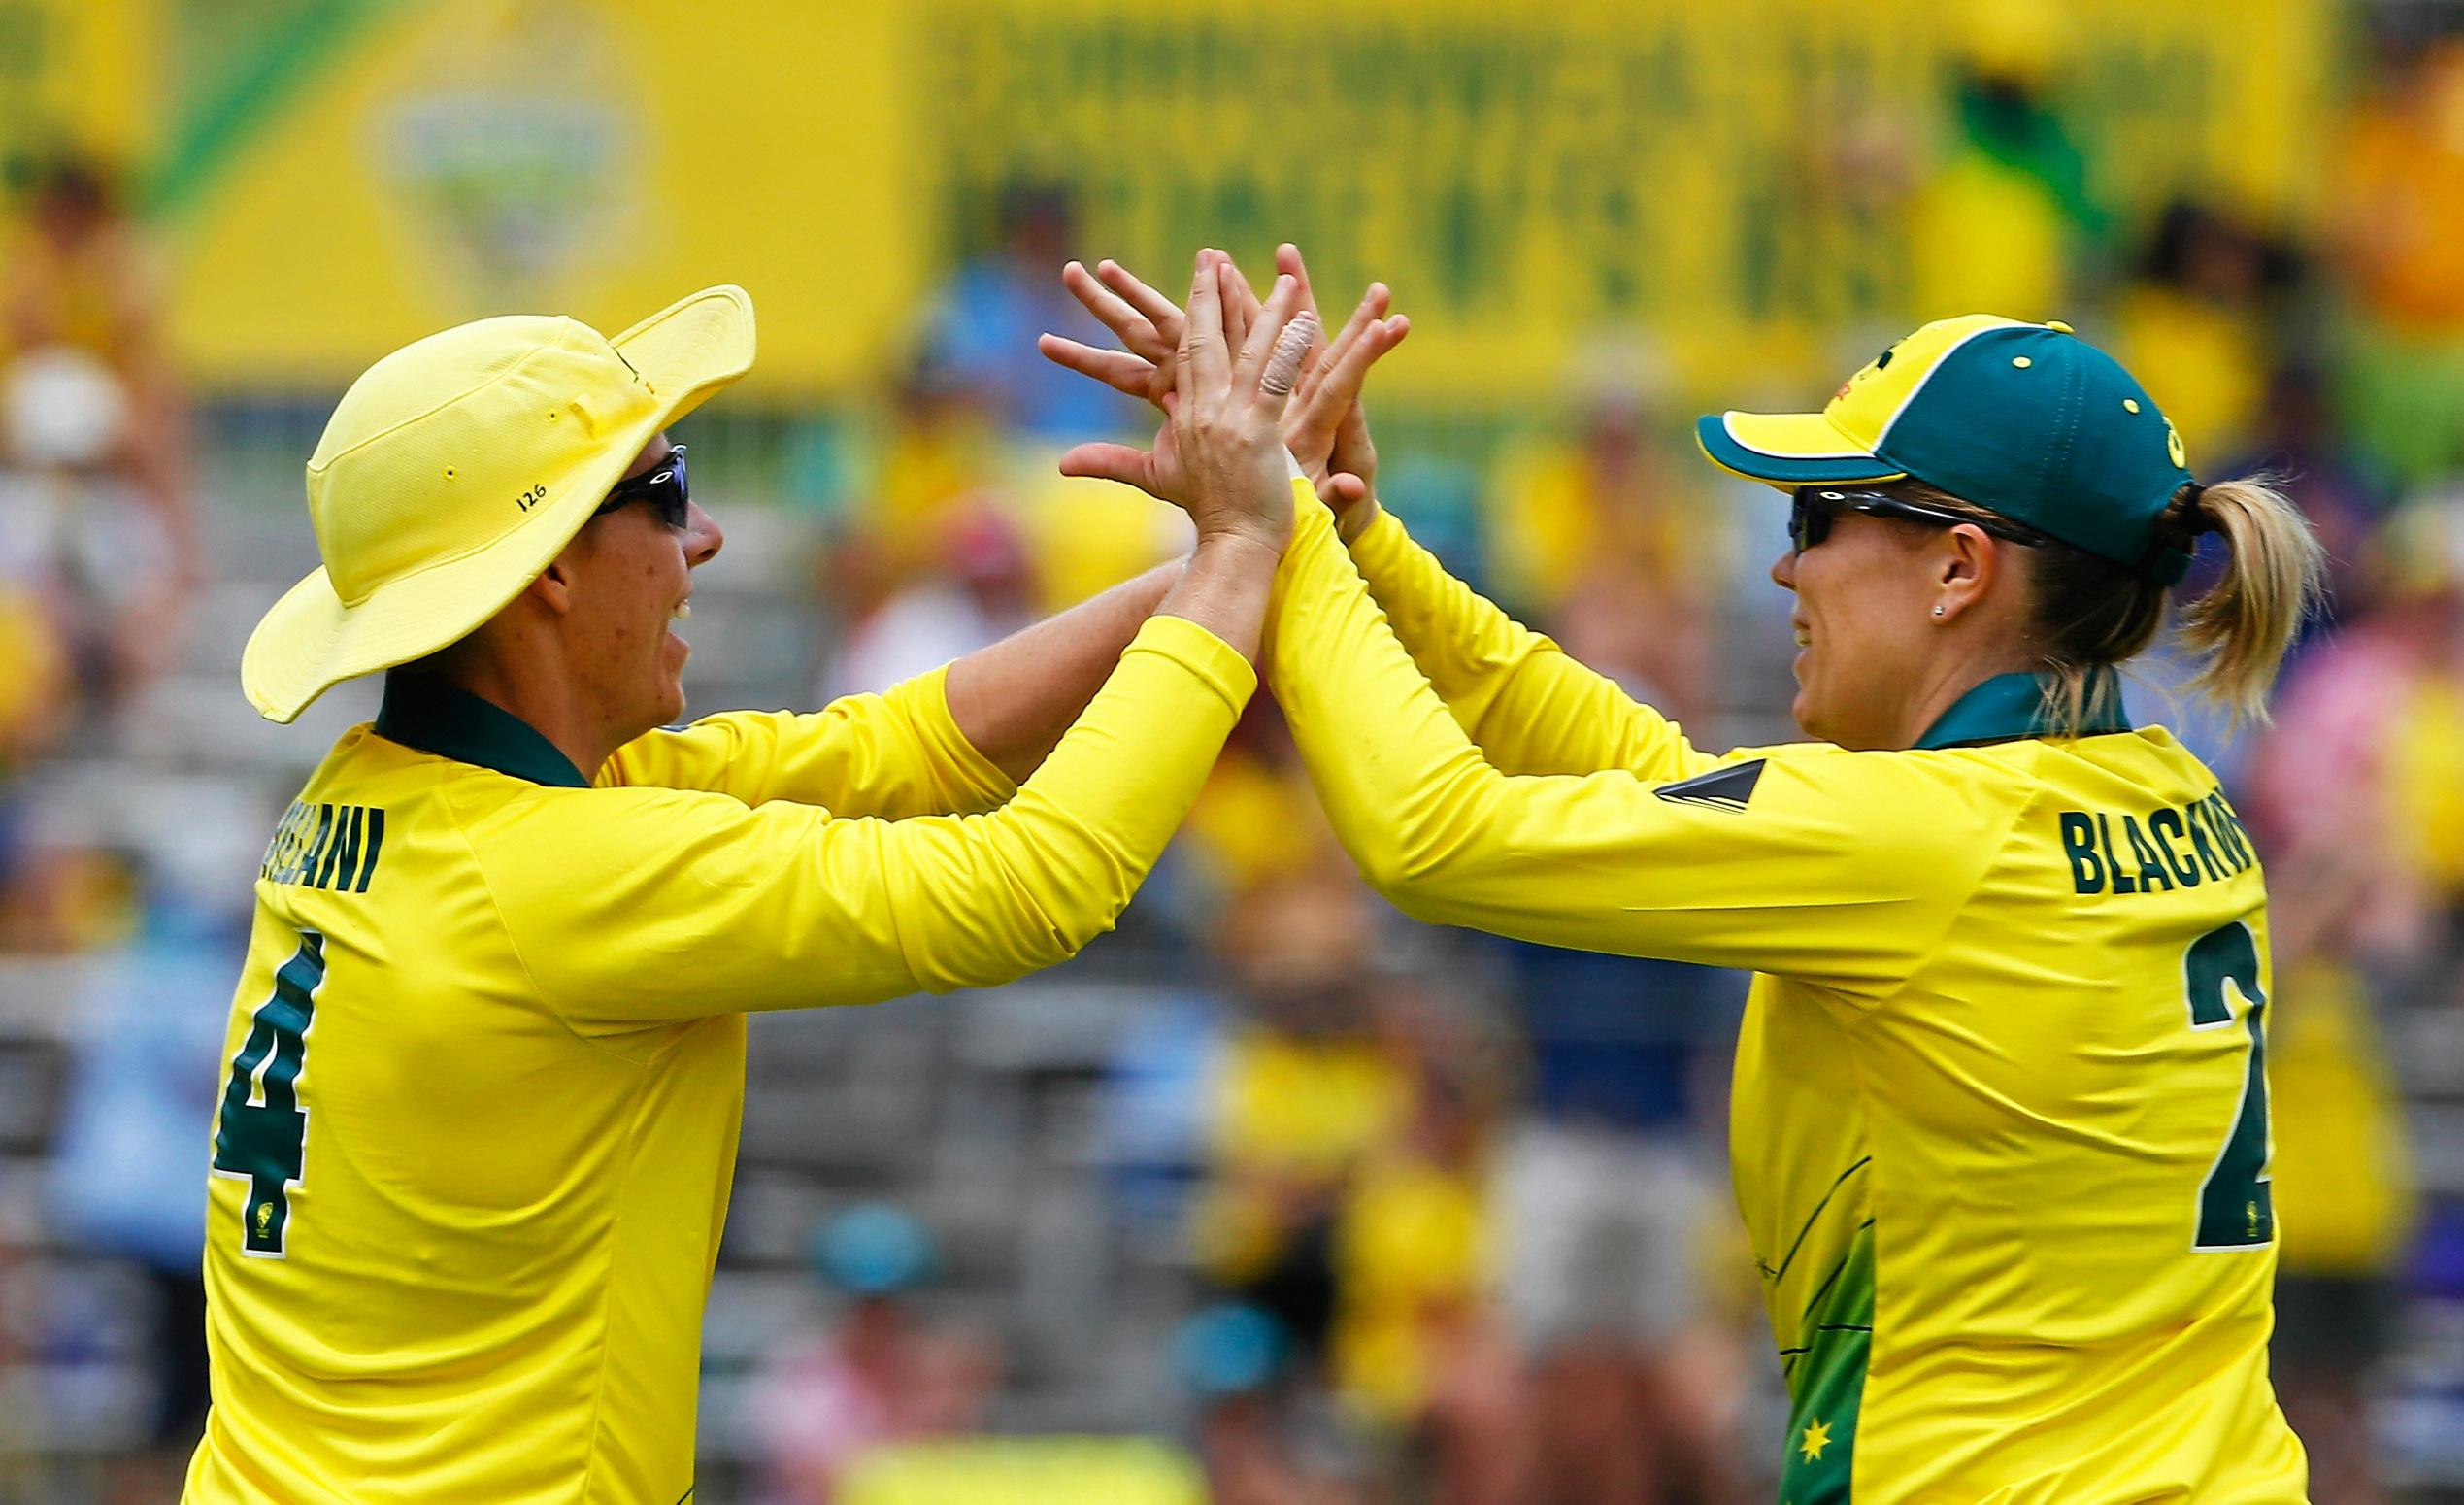 Experienced Southern Stars pair Elyse Villani and Alex Blackwell celebrates the former's catch on the boundary during the Women's One Day International between Australia and England in Brisbane.